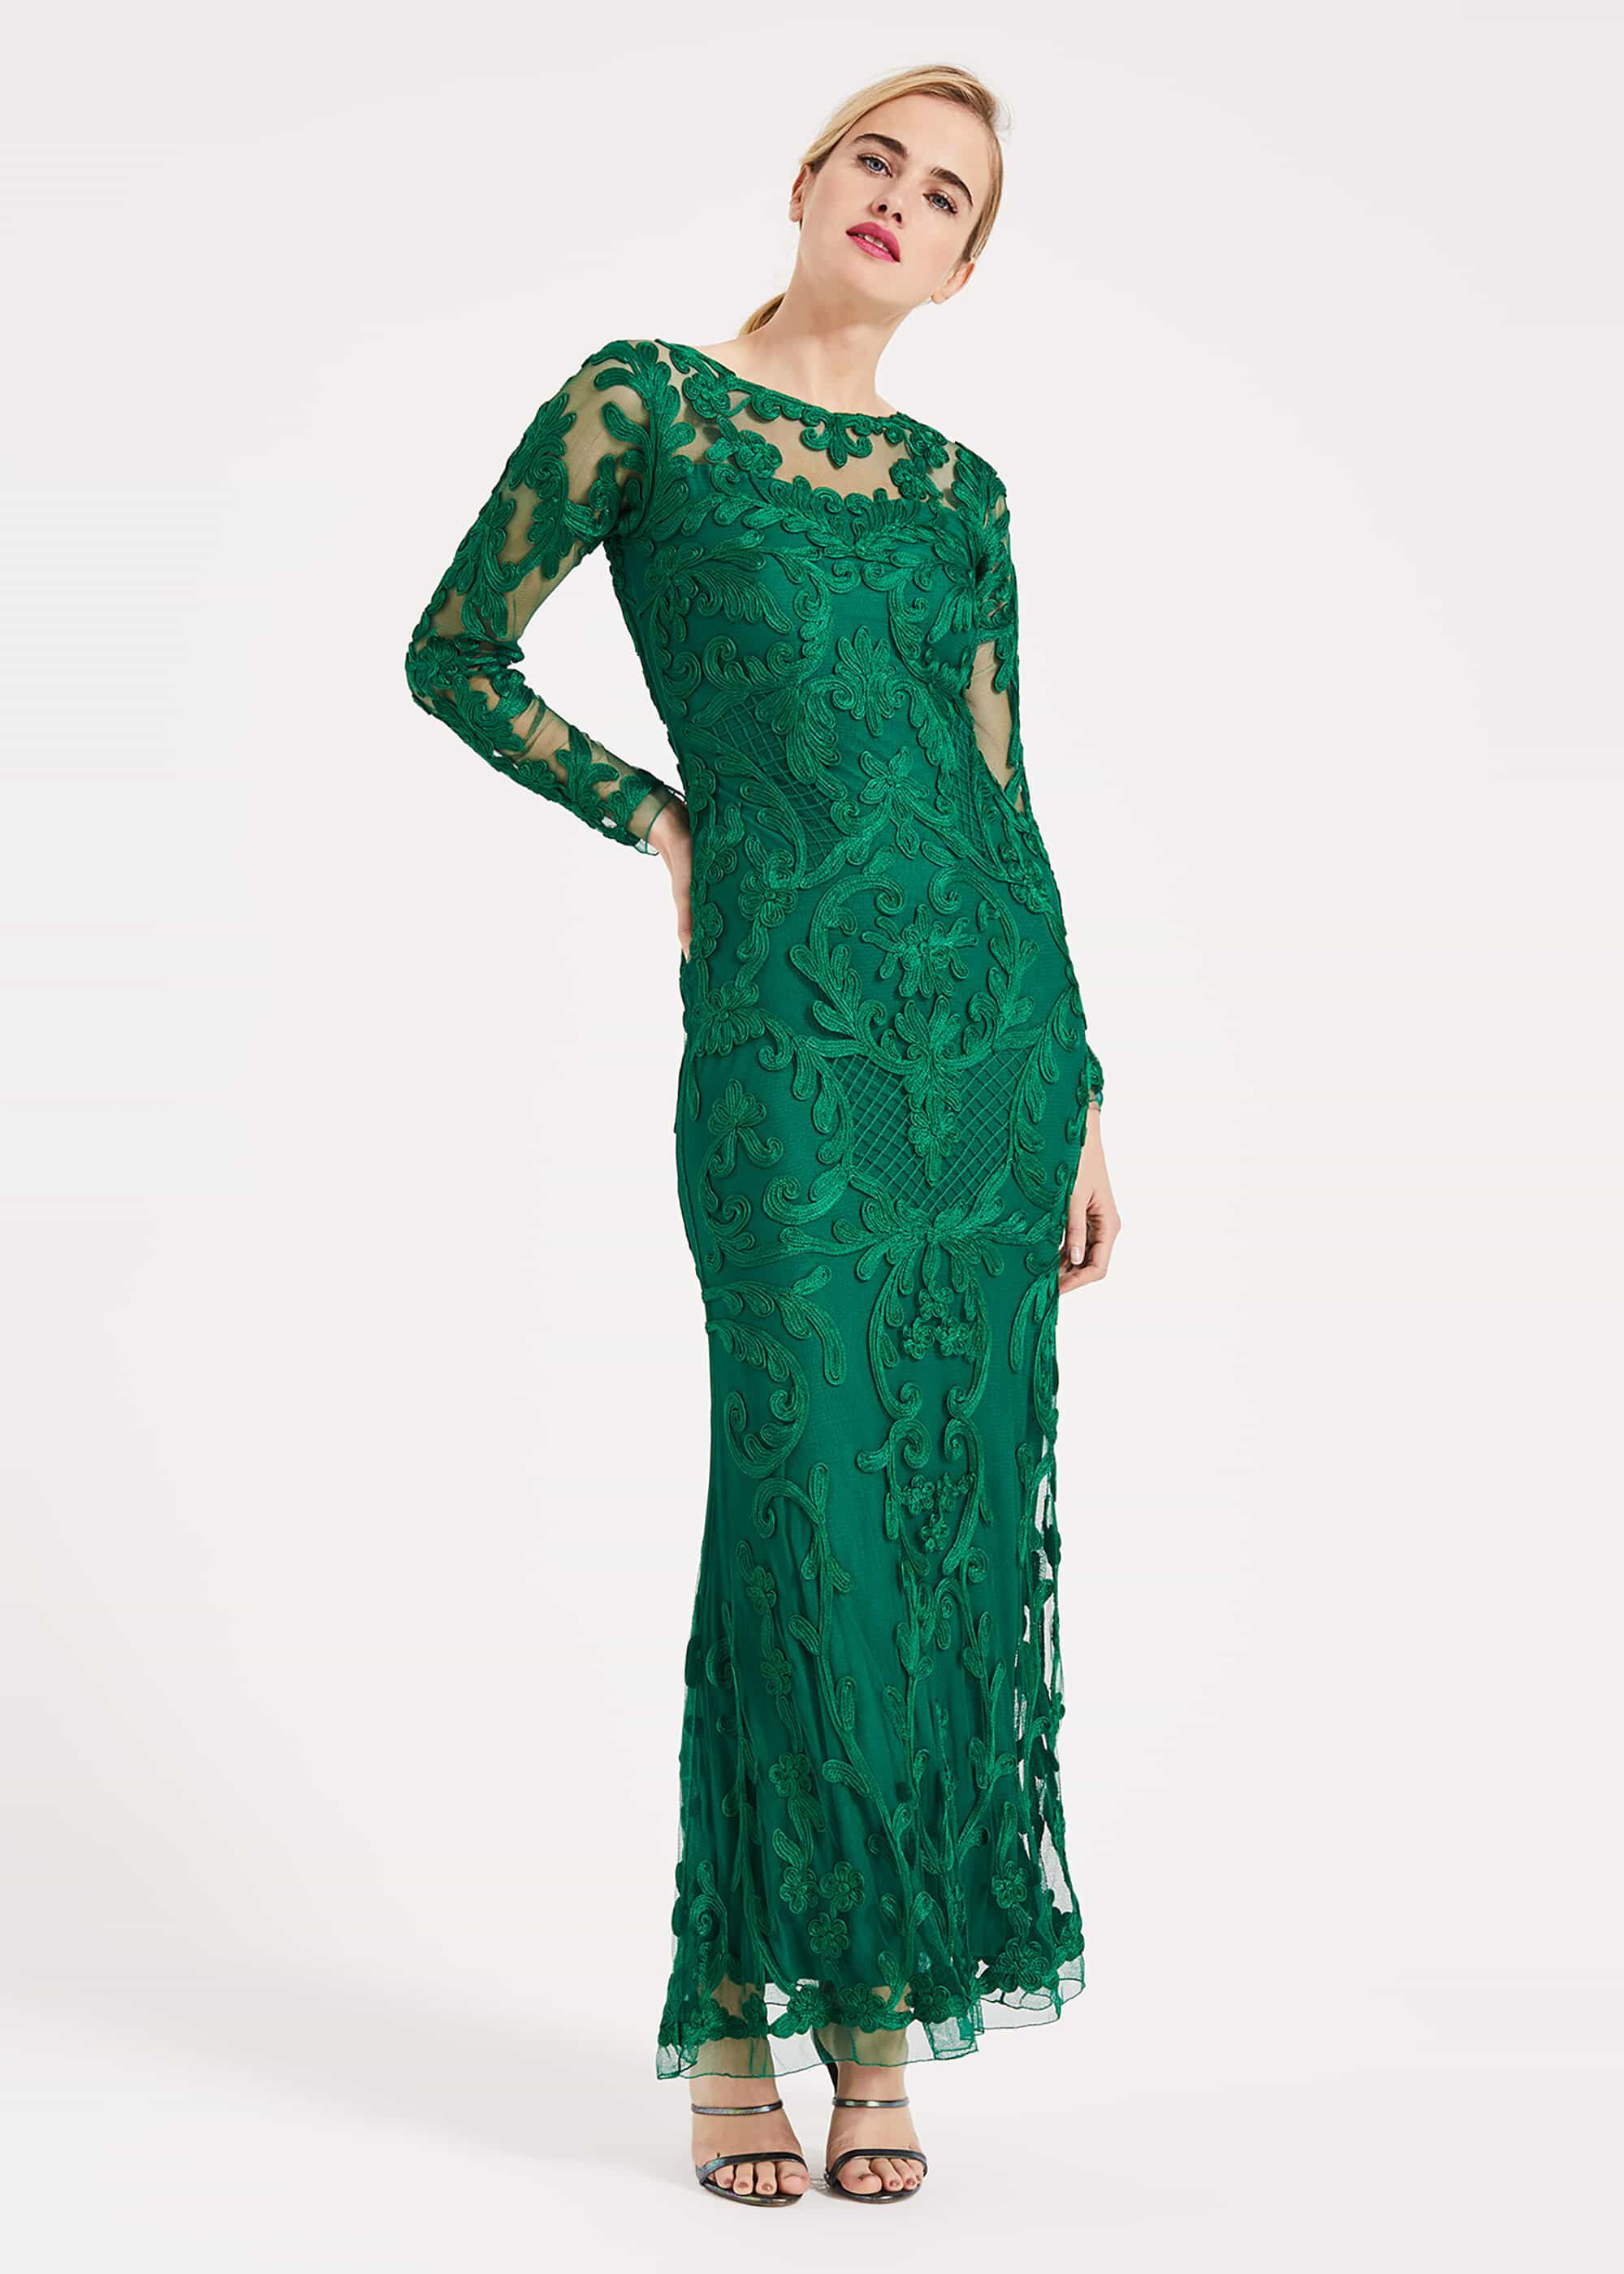 Phase Eight Nikita Tapework Lace Dress, Green, Maxi, Occasion Dress